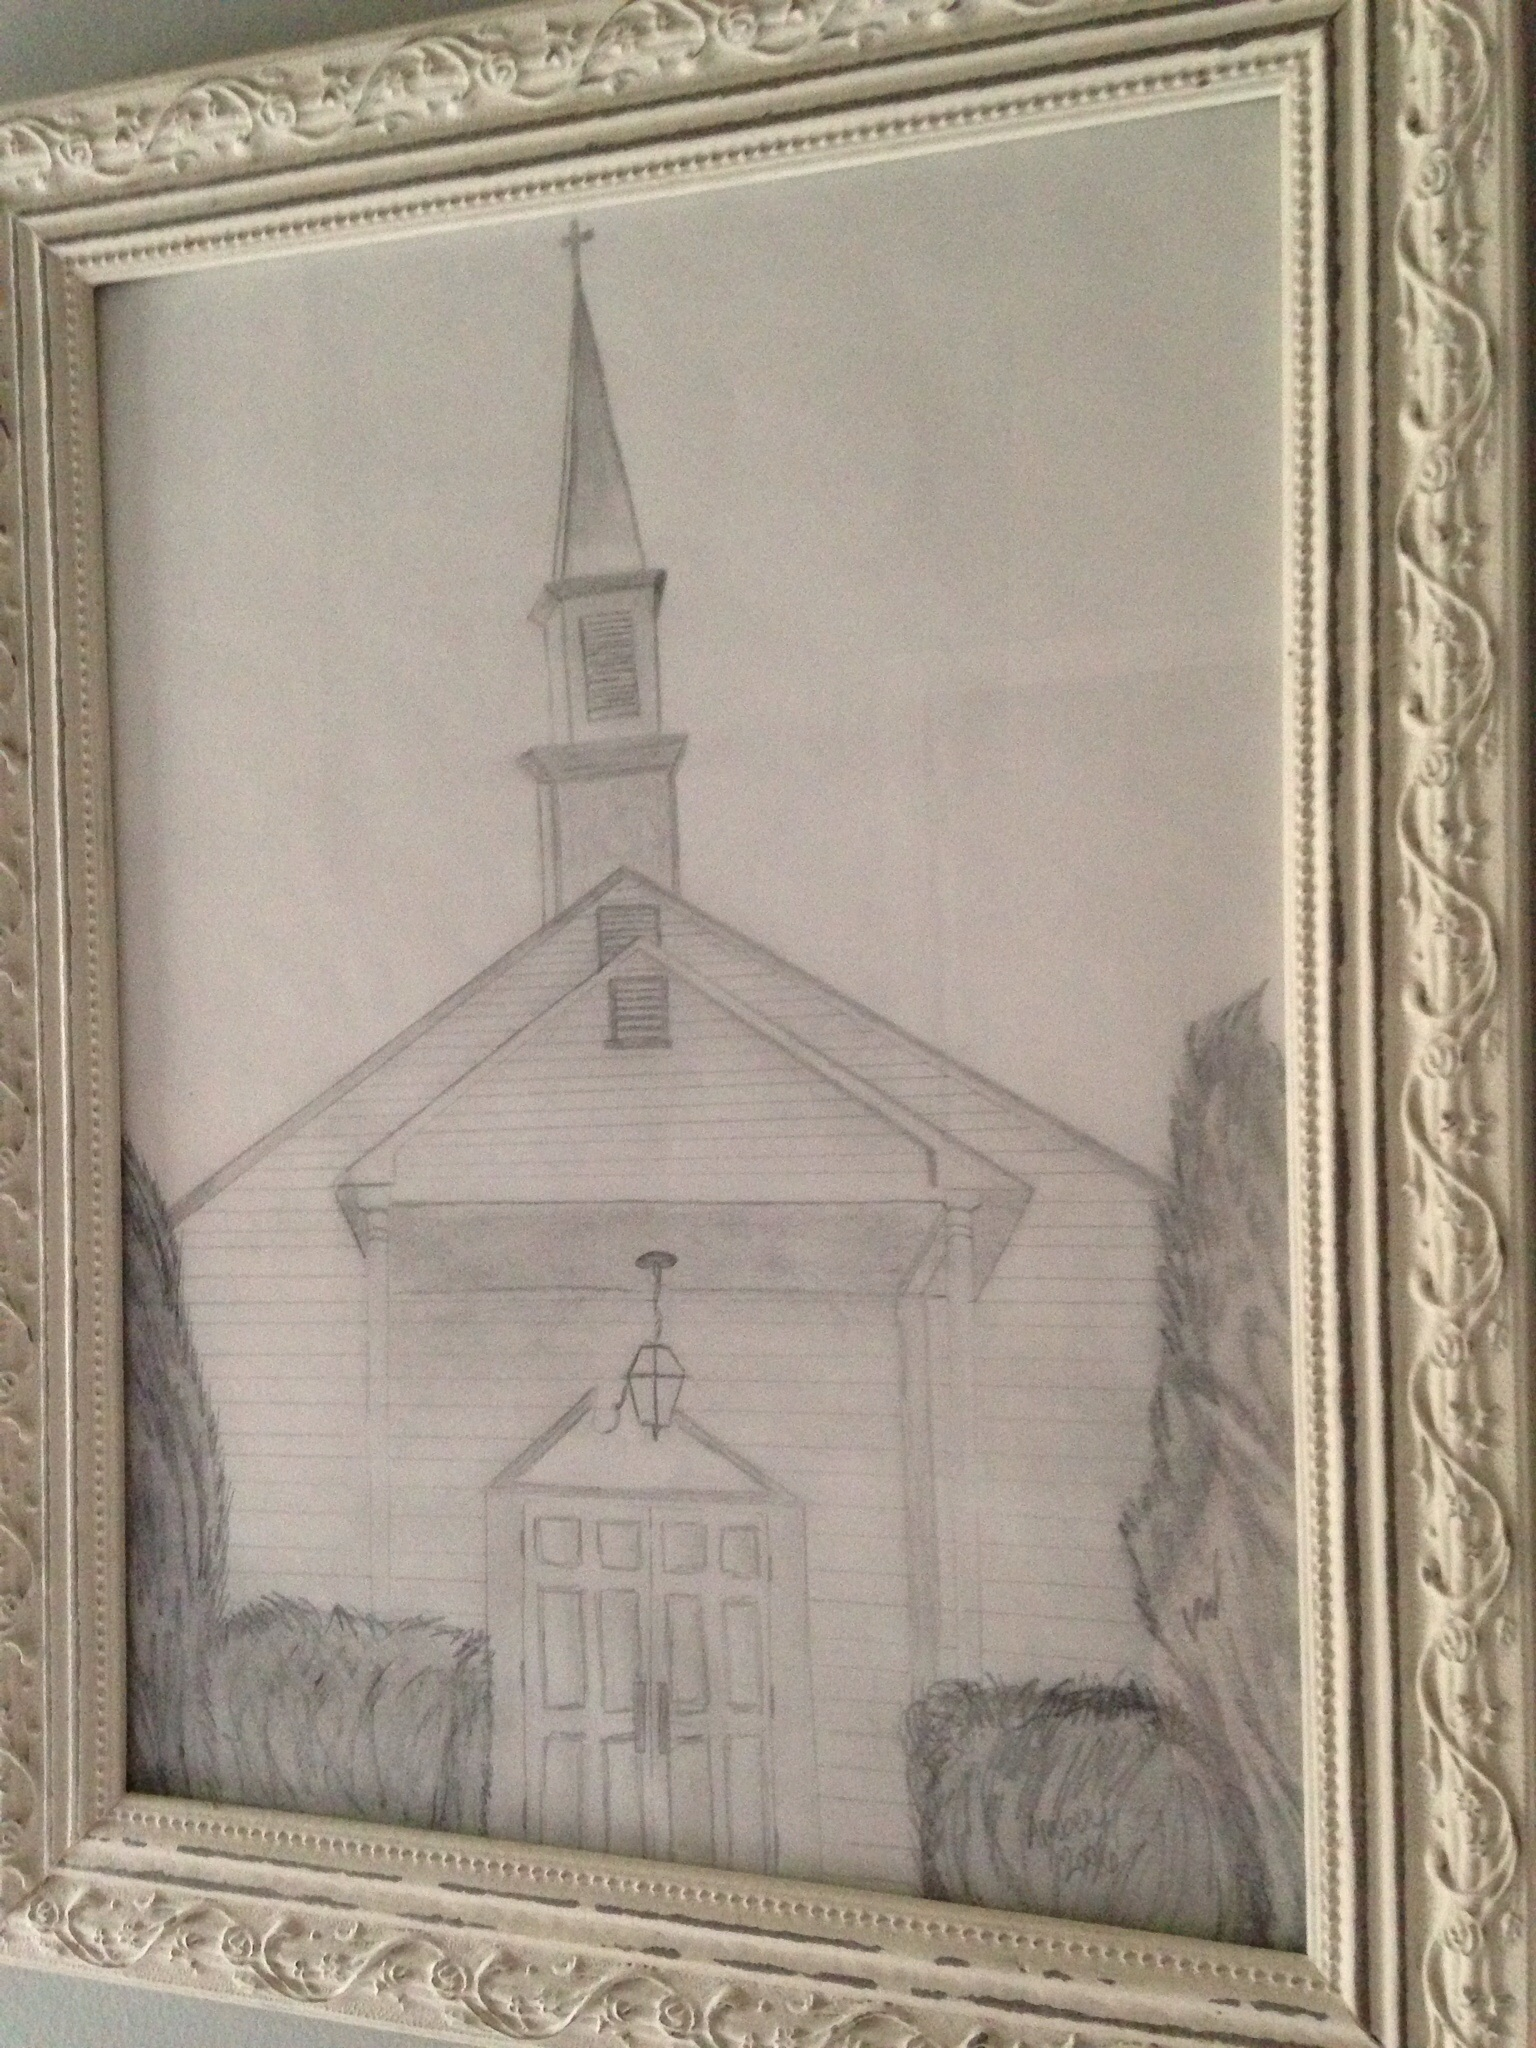 A sketch of the prayer chapel that my sister did.